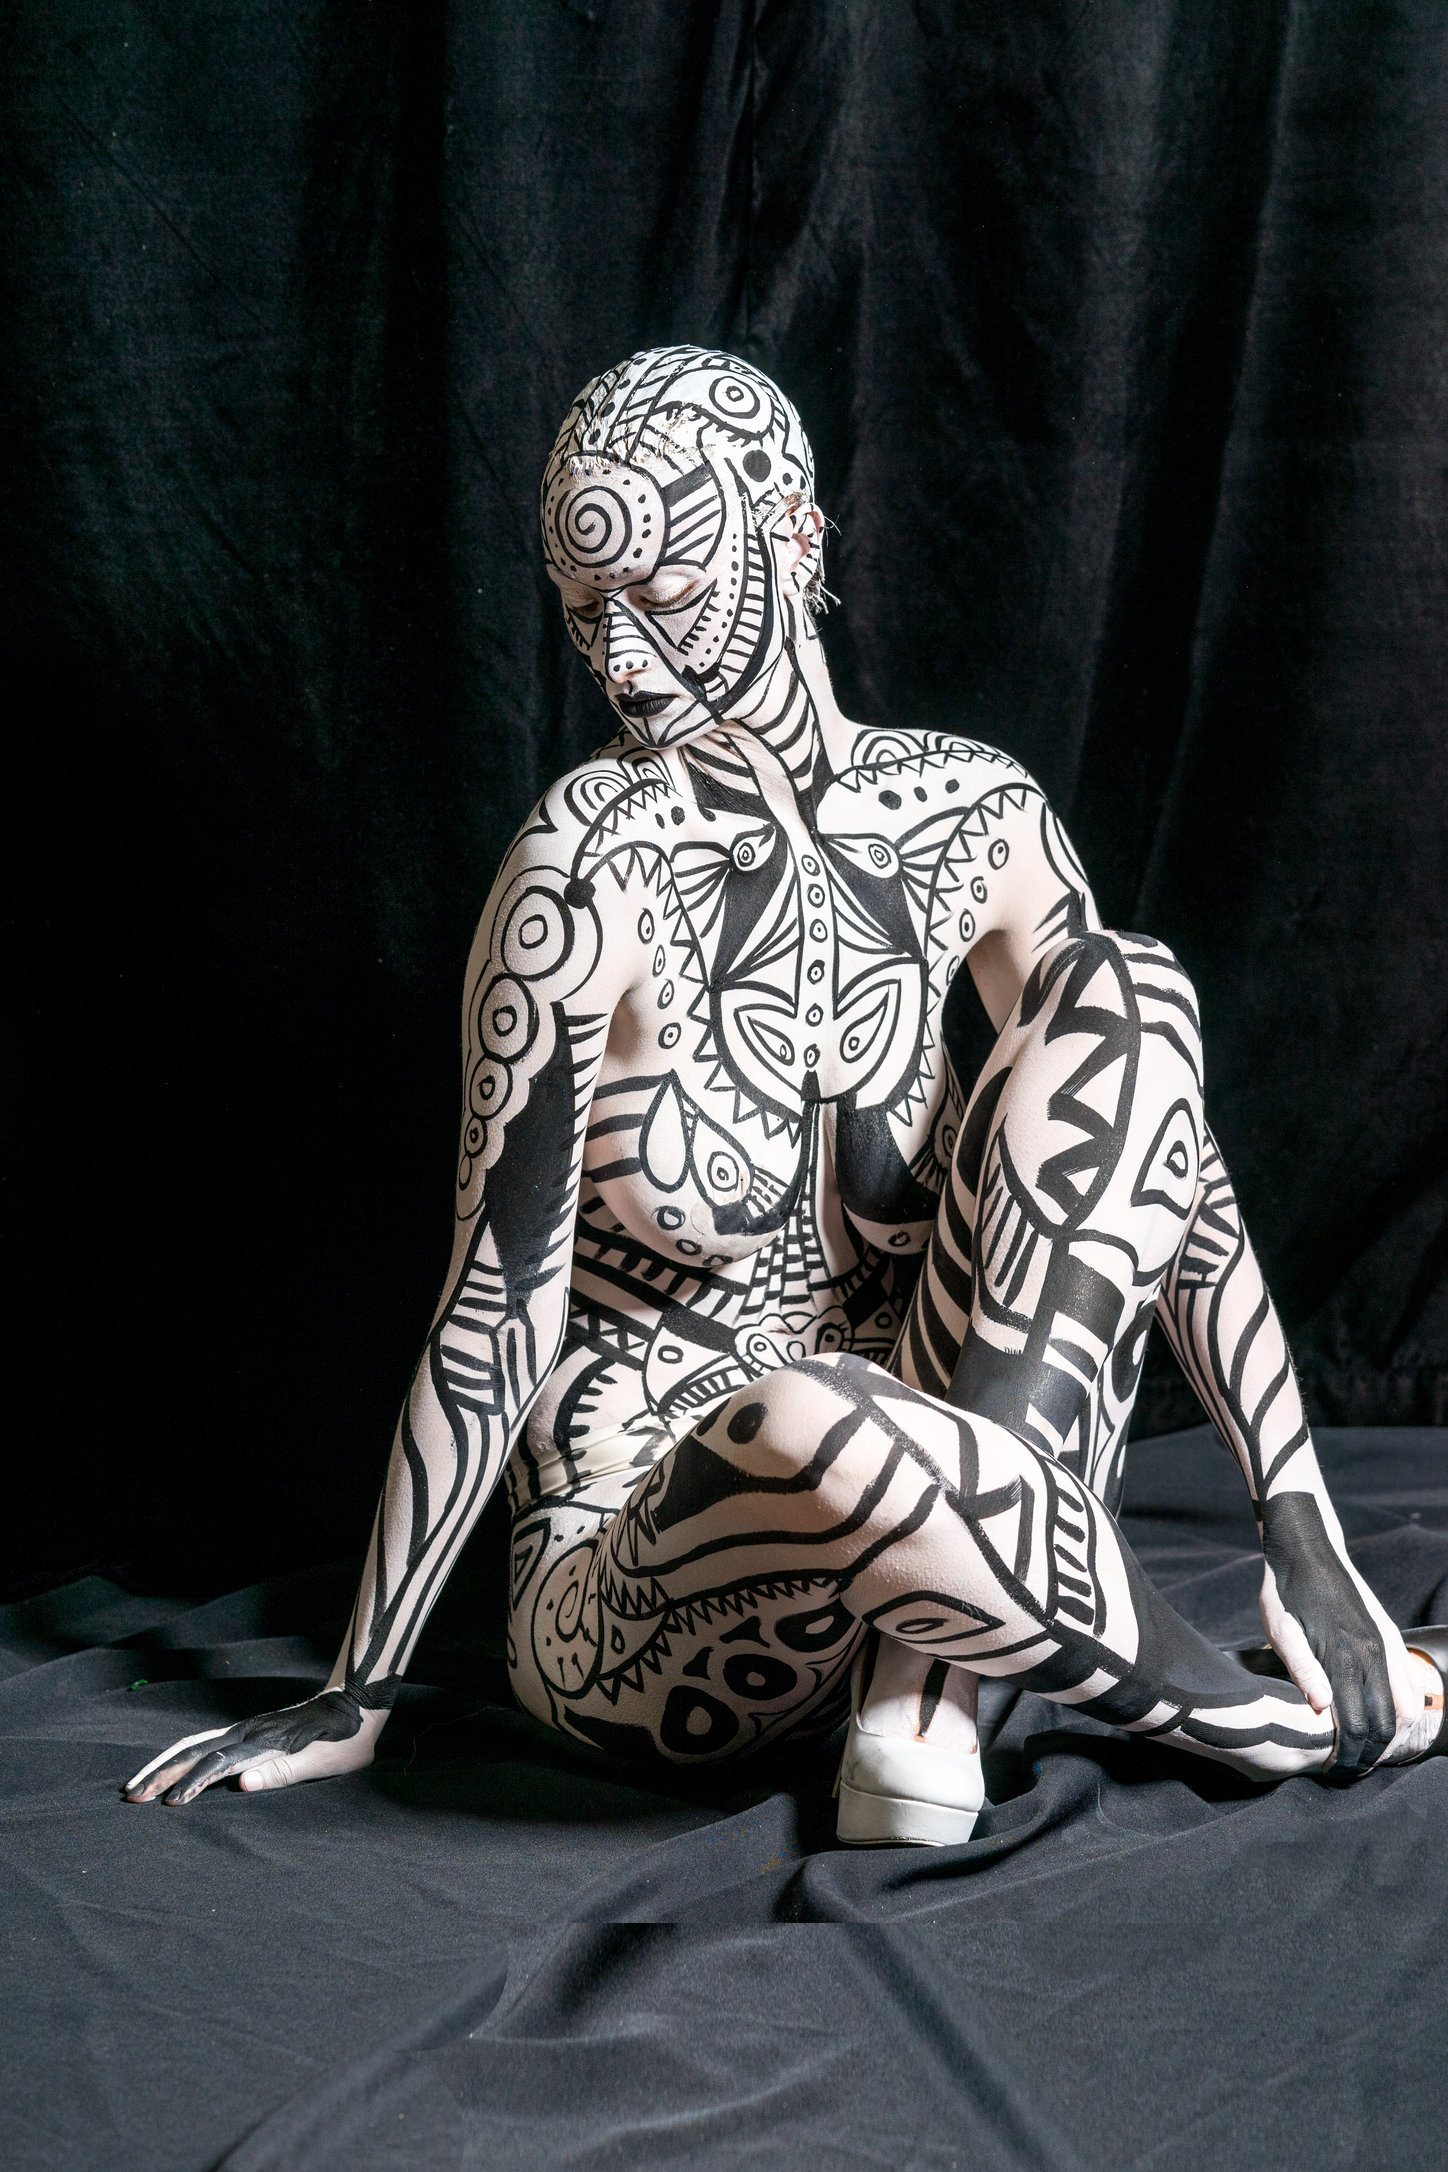 BodyPaint-113-Edit.jpg